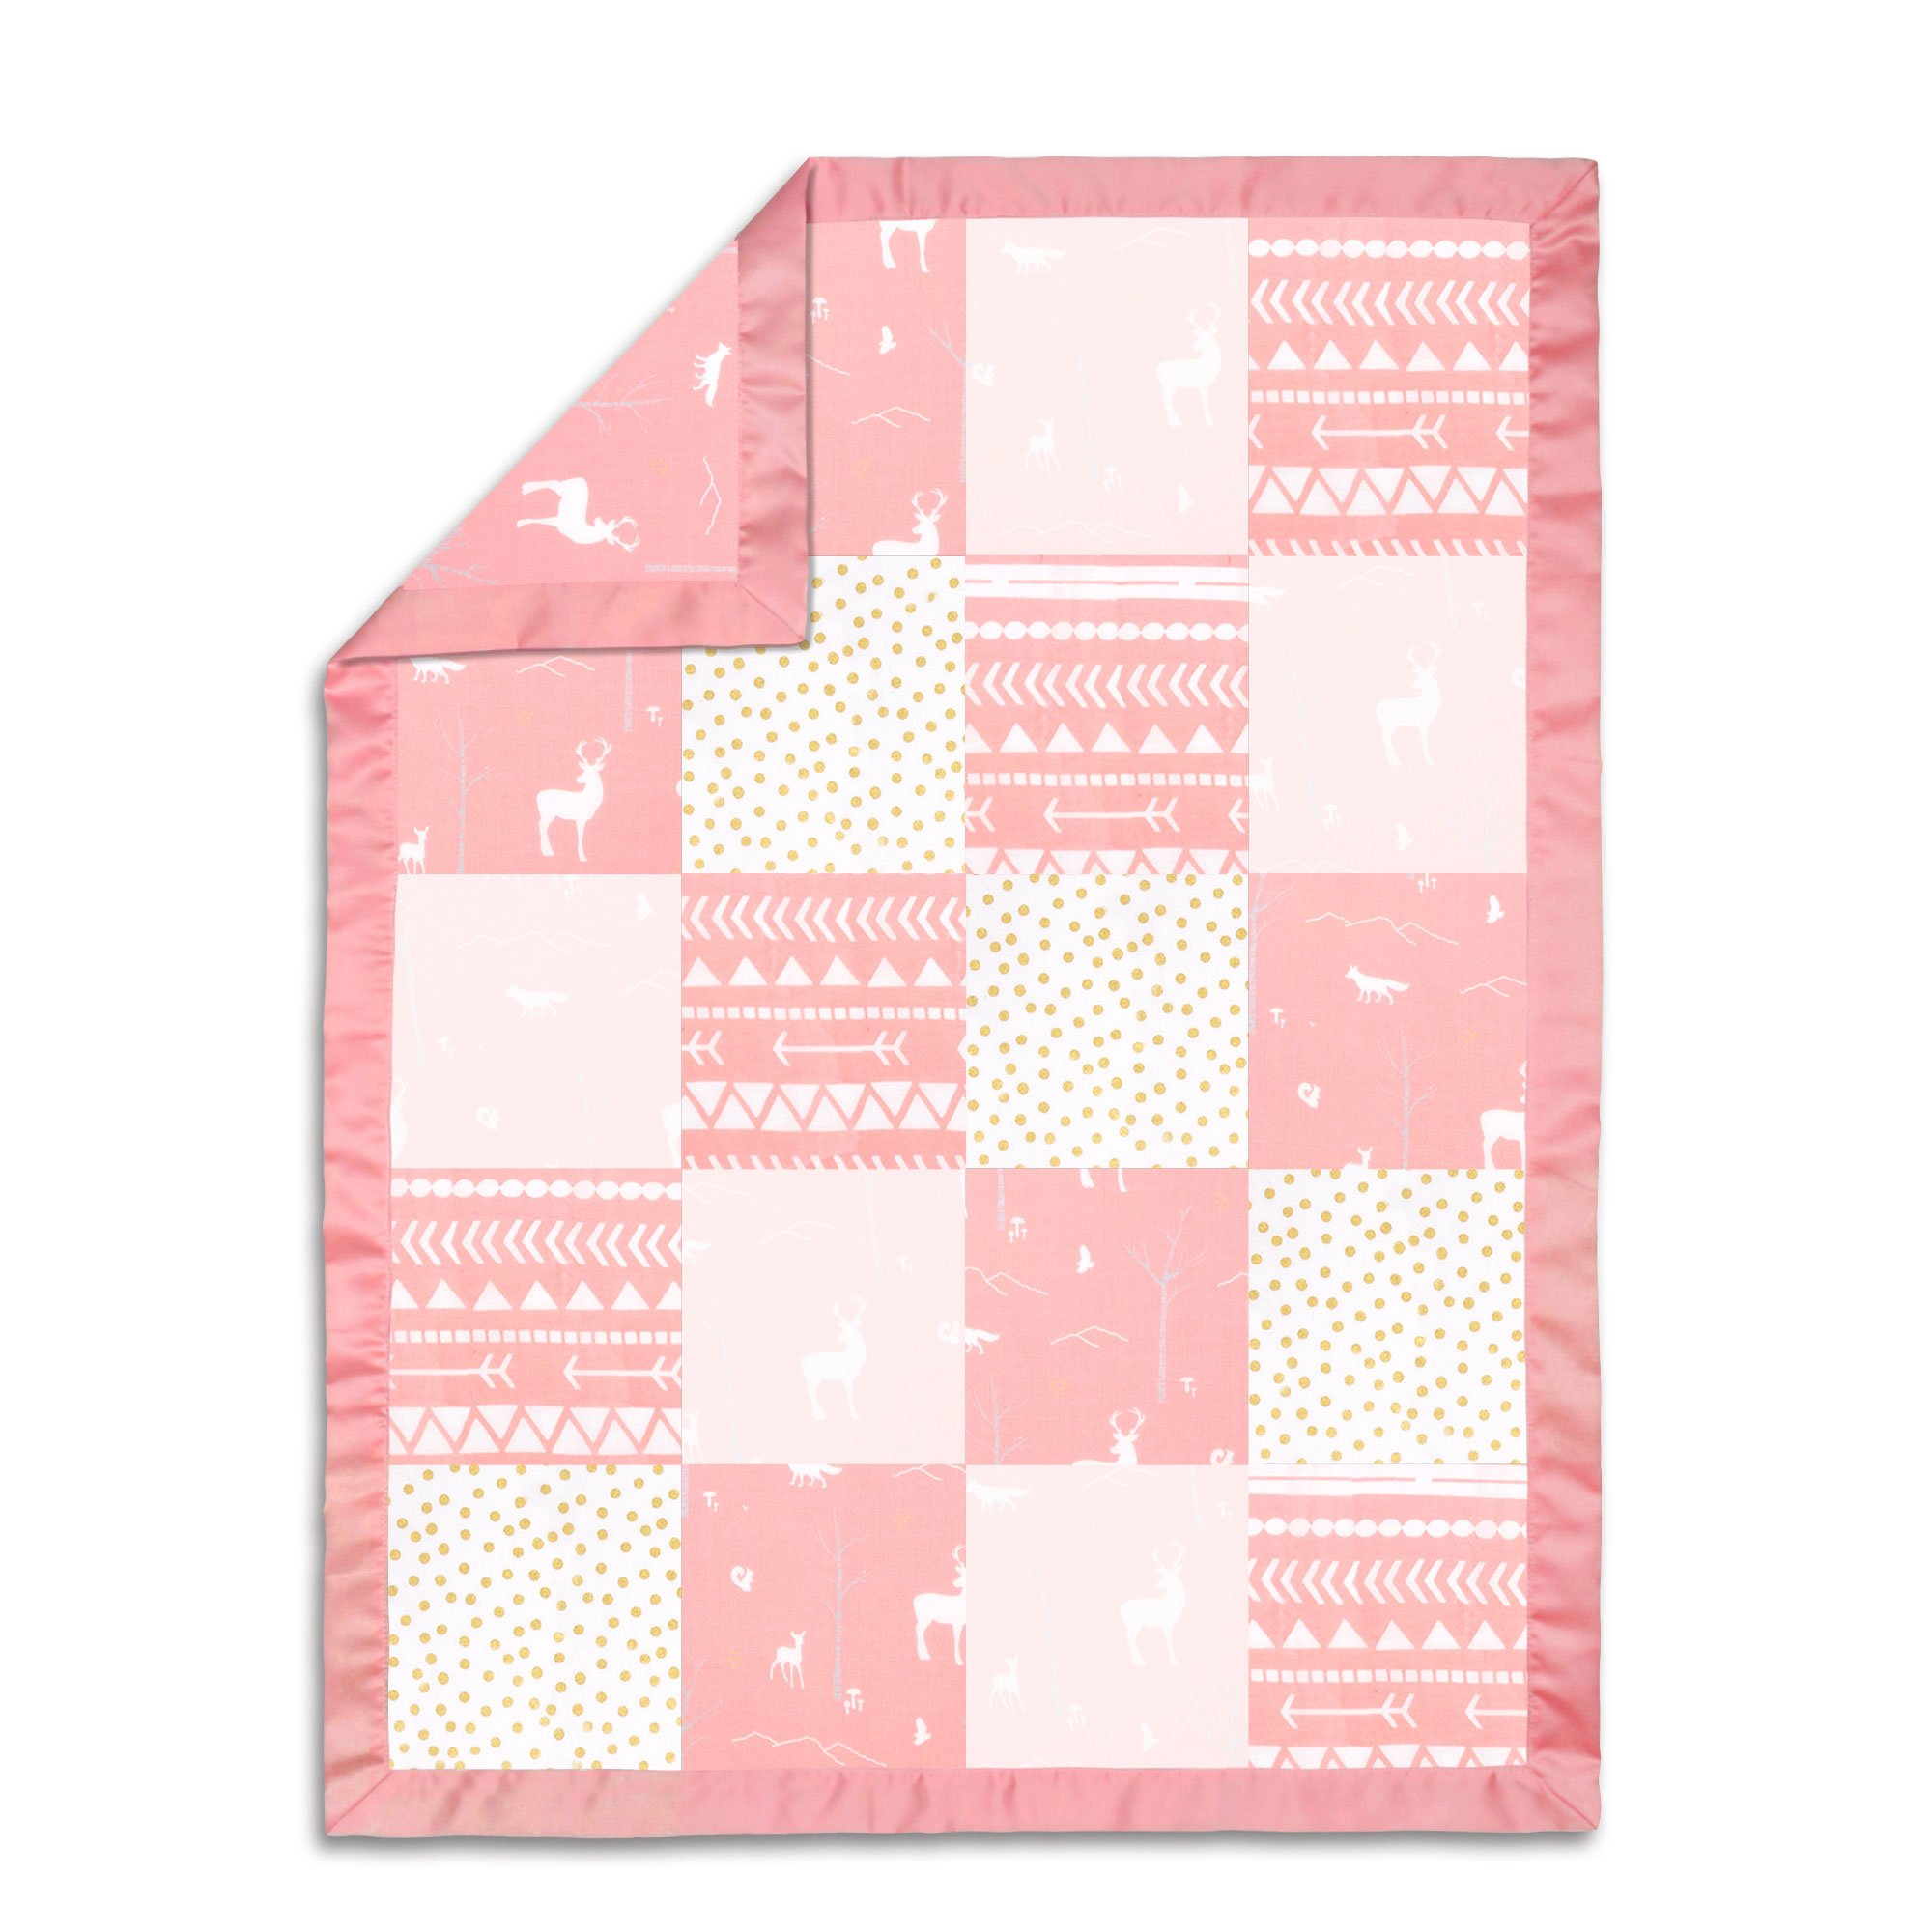 100% Cotton Muslin Coral Woodland Patchwork Baby Blanket by The Peanut Shell